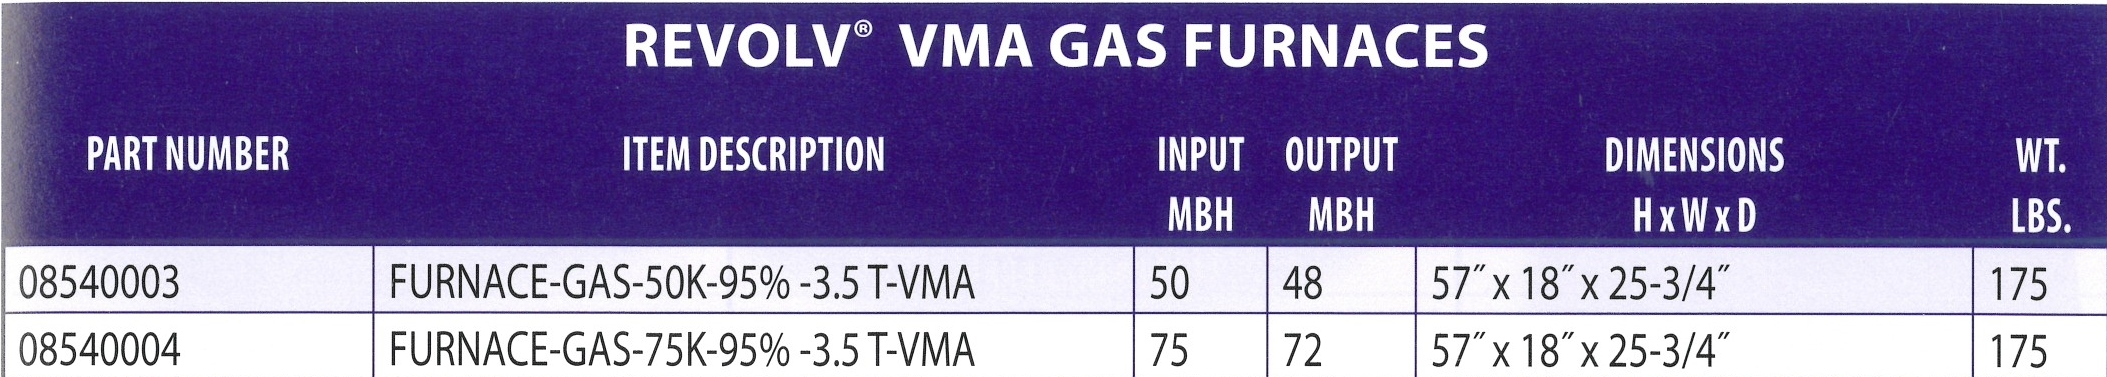 08540003 08540004 REVOLV VMA GAS FURNACES